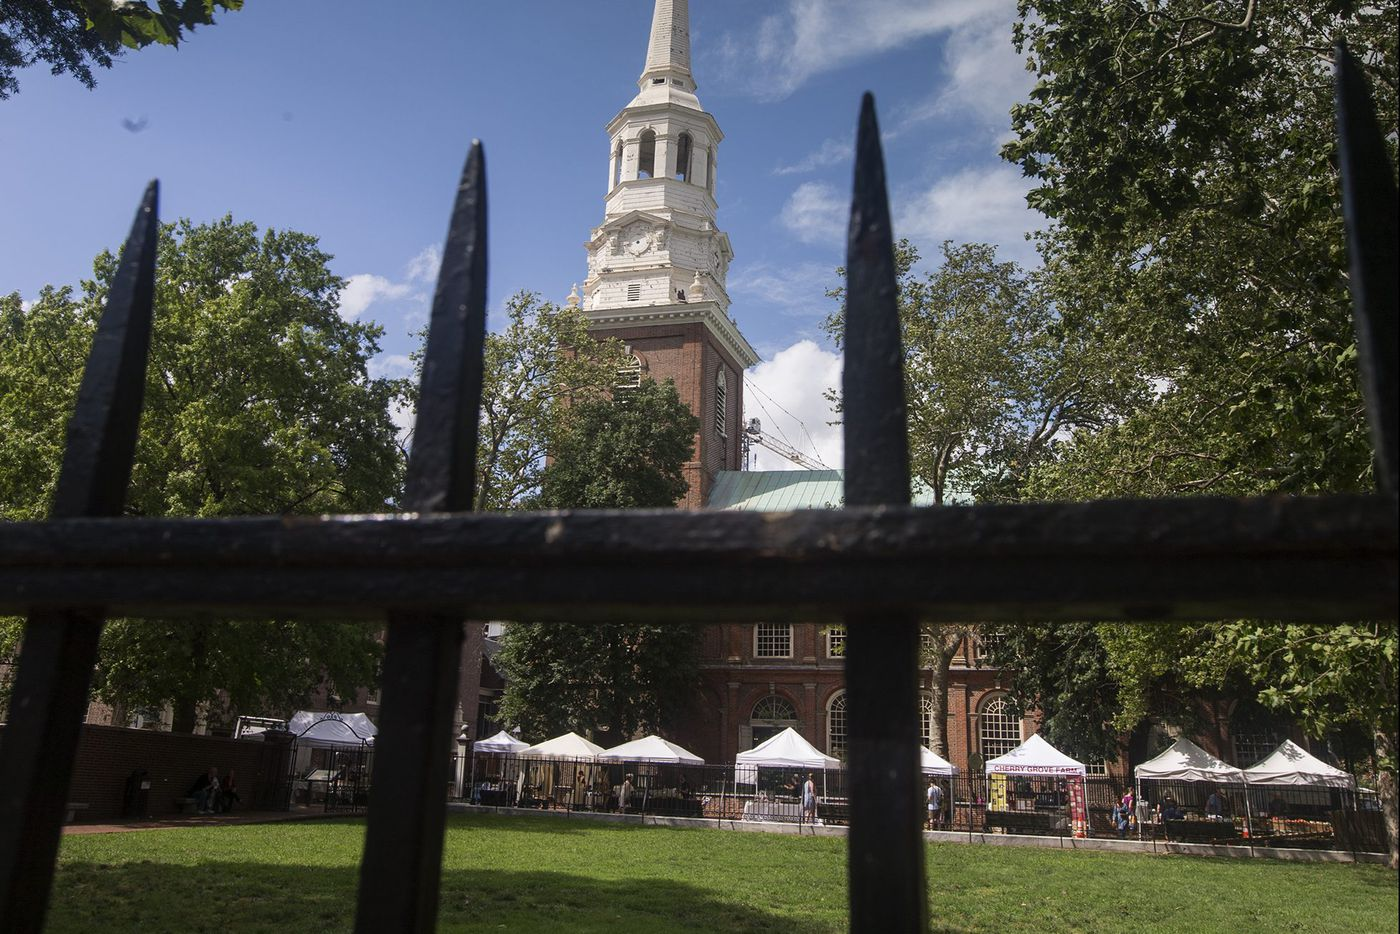 No-brainer: Letting Old City neighbors redo run-down park behind Christ Church | Editorial